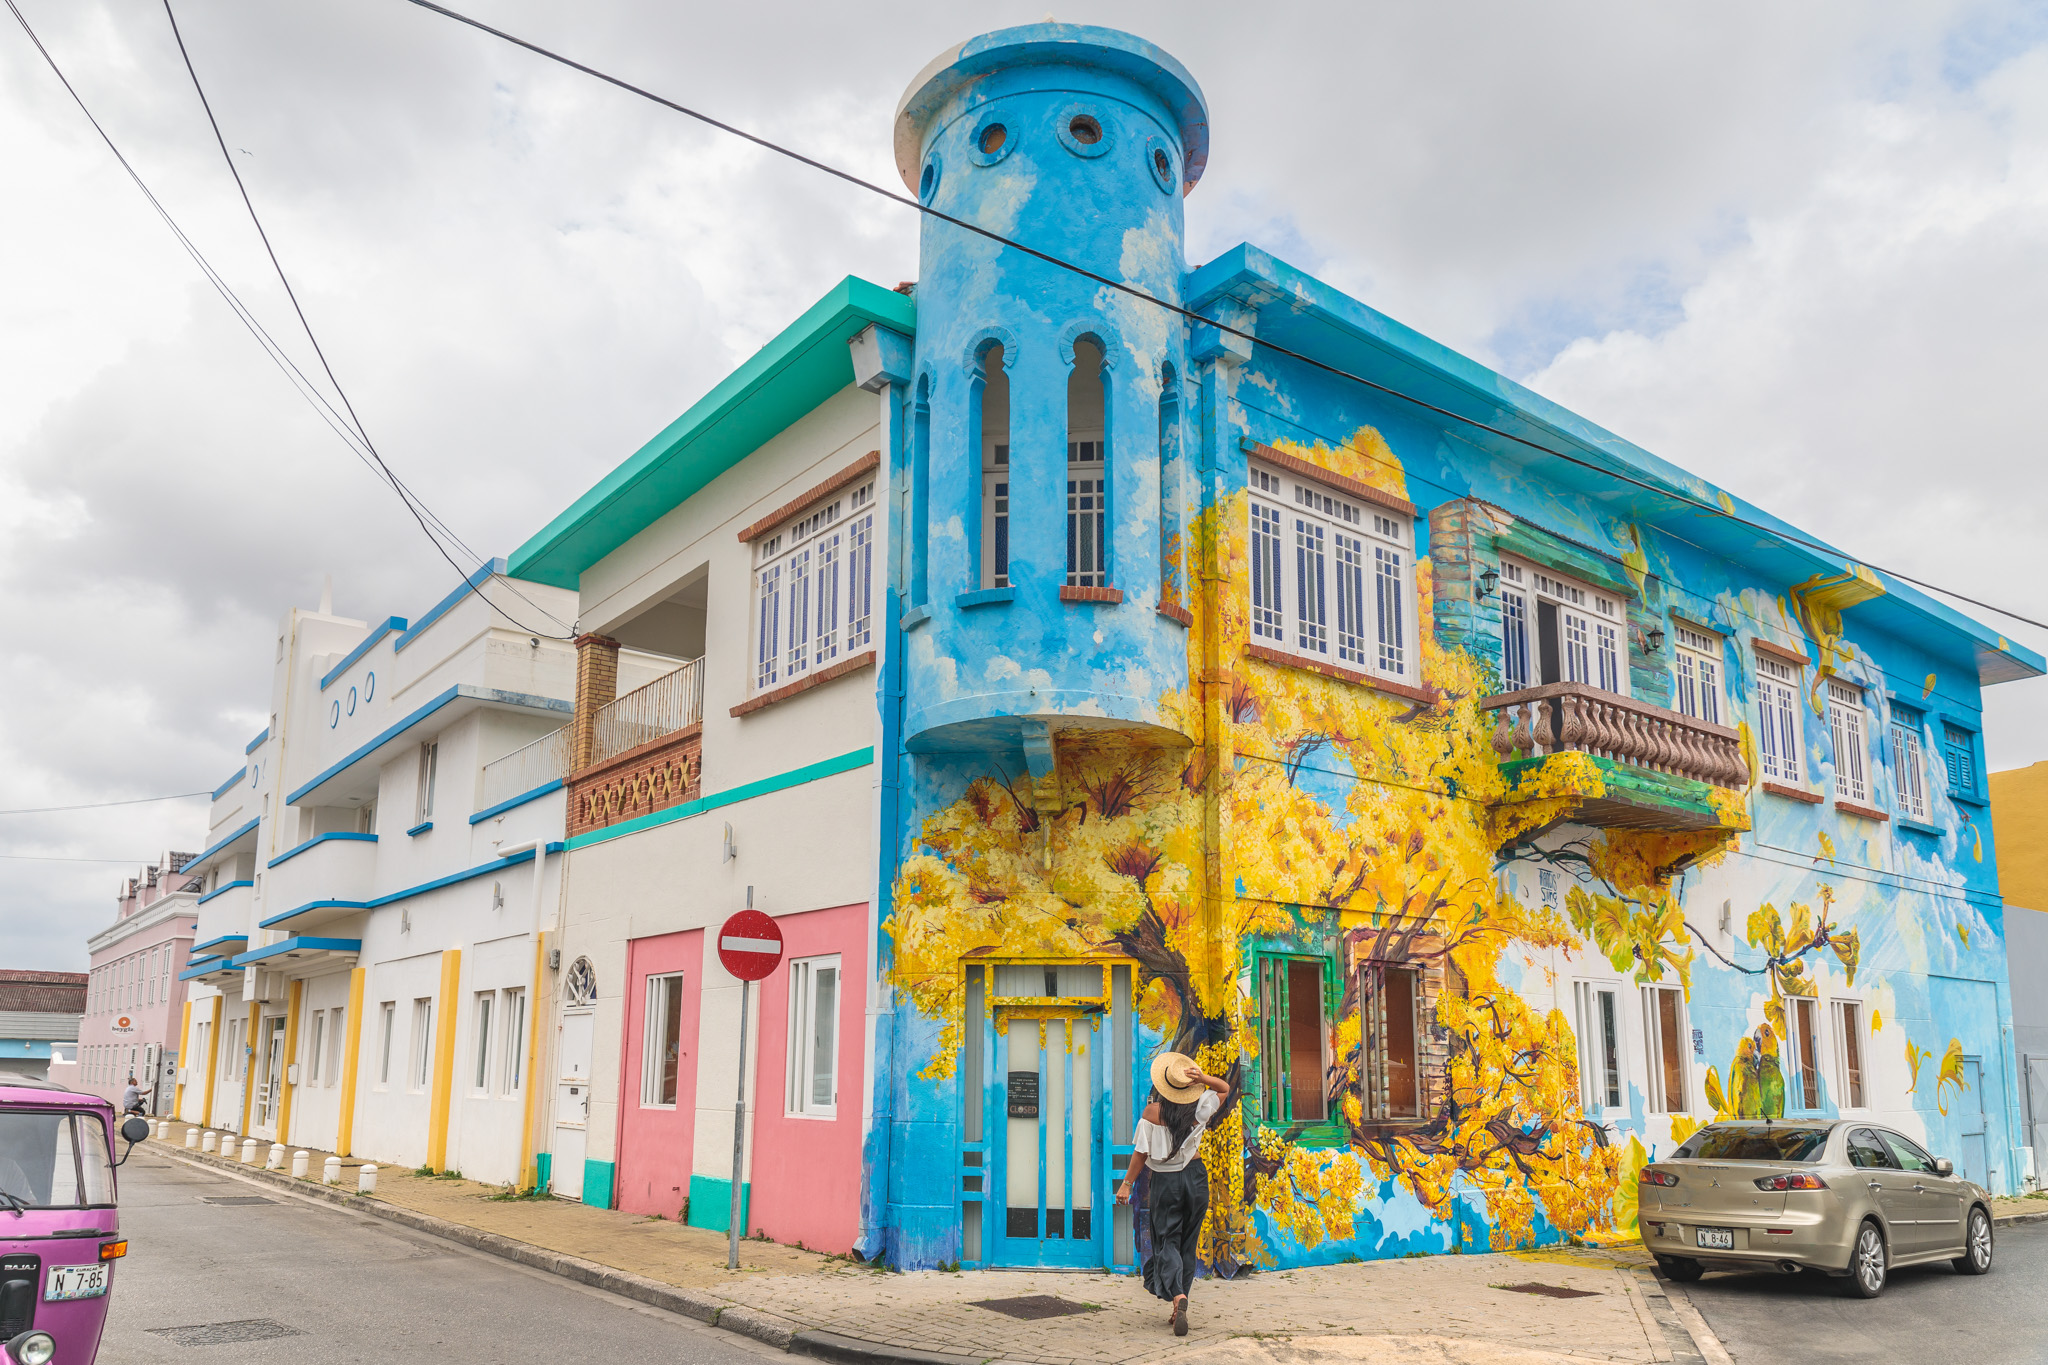 The colorful street art of Willemstad, Curaçao // 20 Photos to Show You Why Curaçao Needs to Be On Your Travel Radar // www.readysetjetset.net #readysetjetset #curacao #caribbean #beach #ocean #paradise #travel